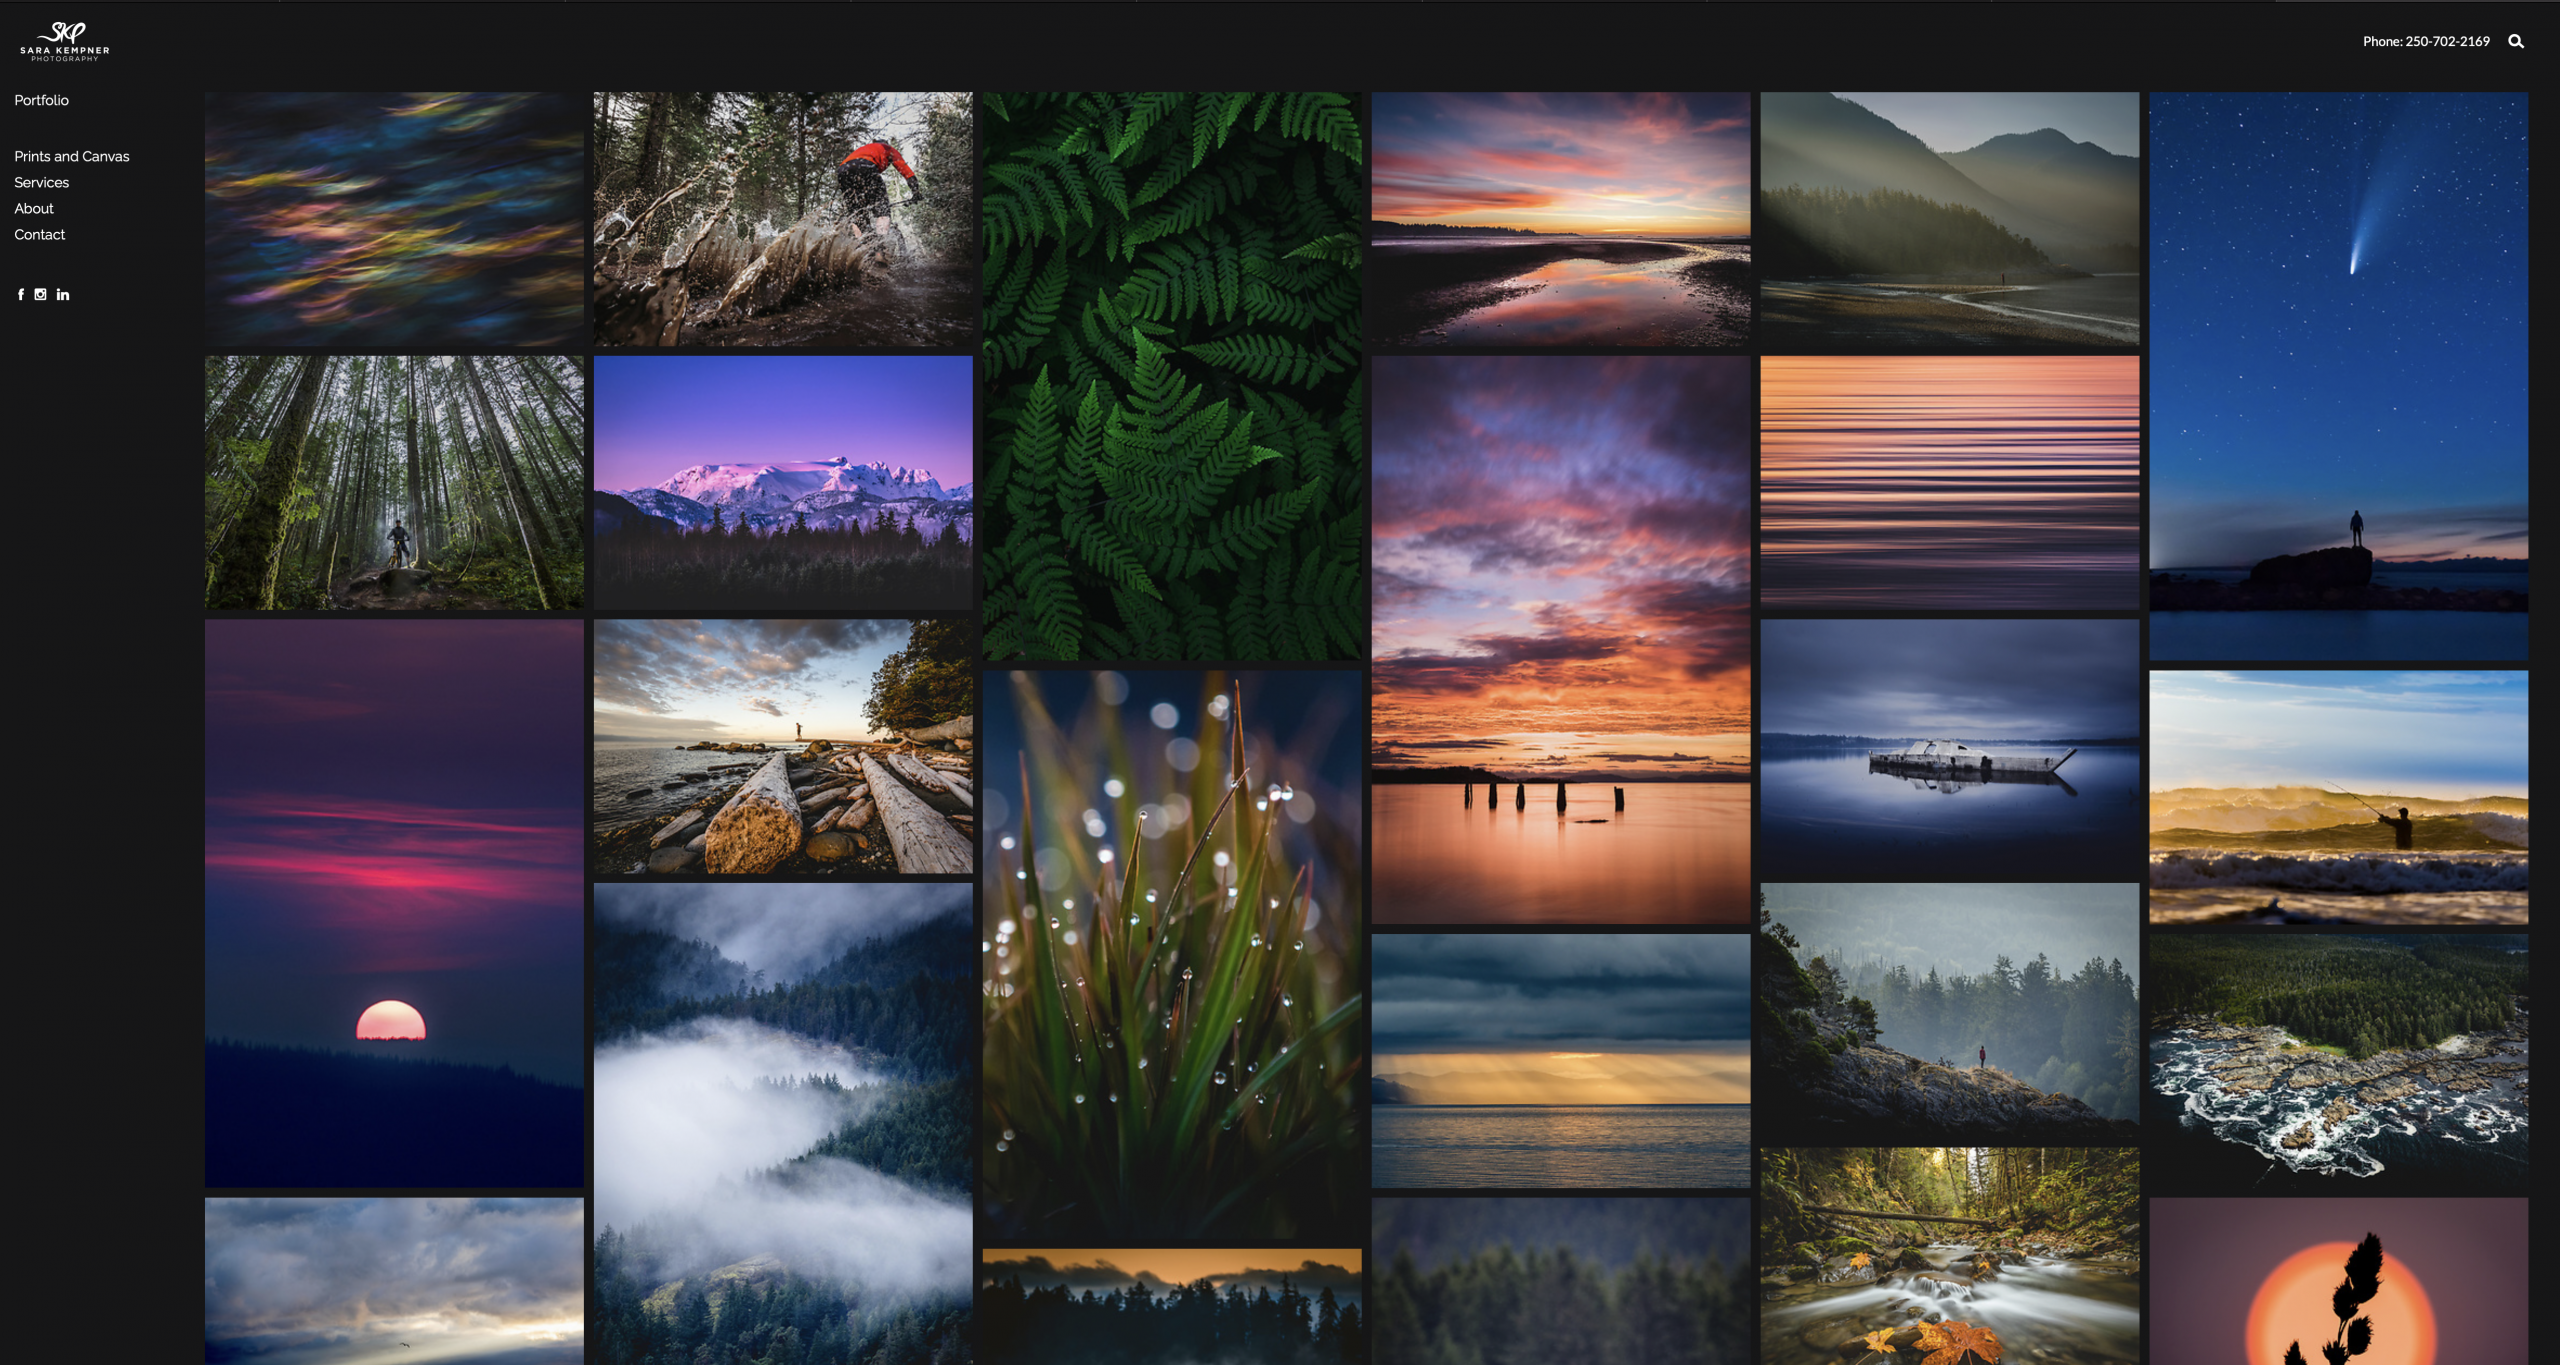 I chose the East template as my home landing page for my photography portfolio. There are five other templates to choose from as well.